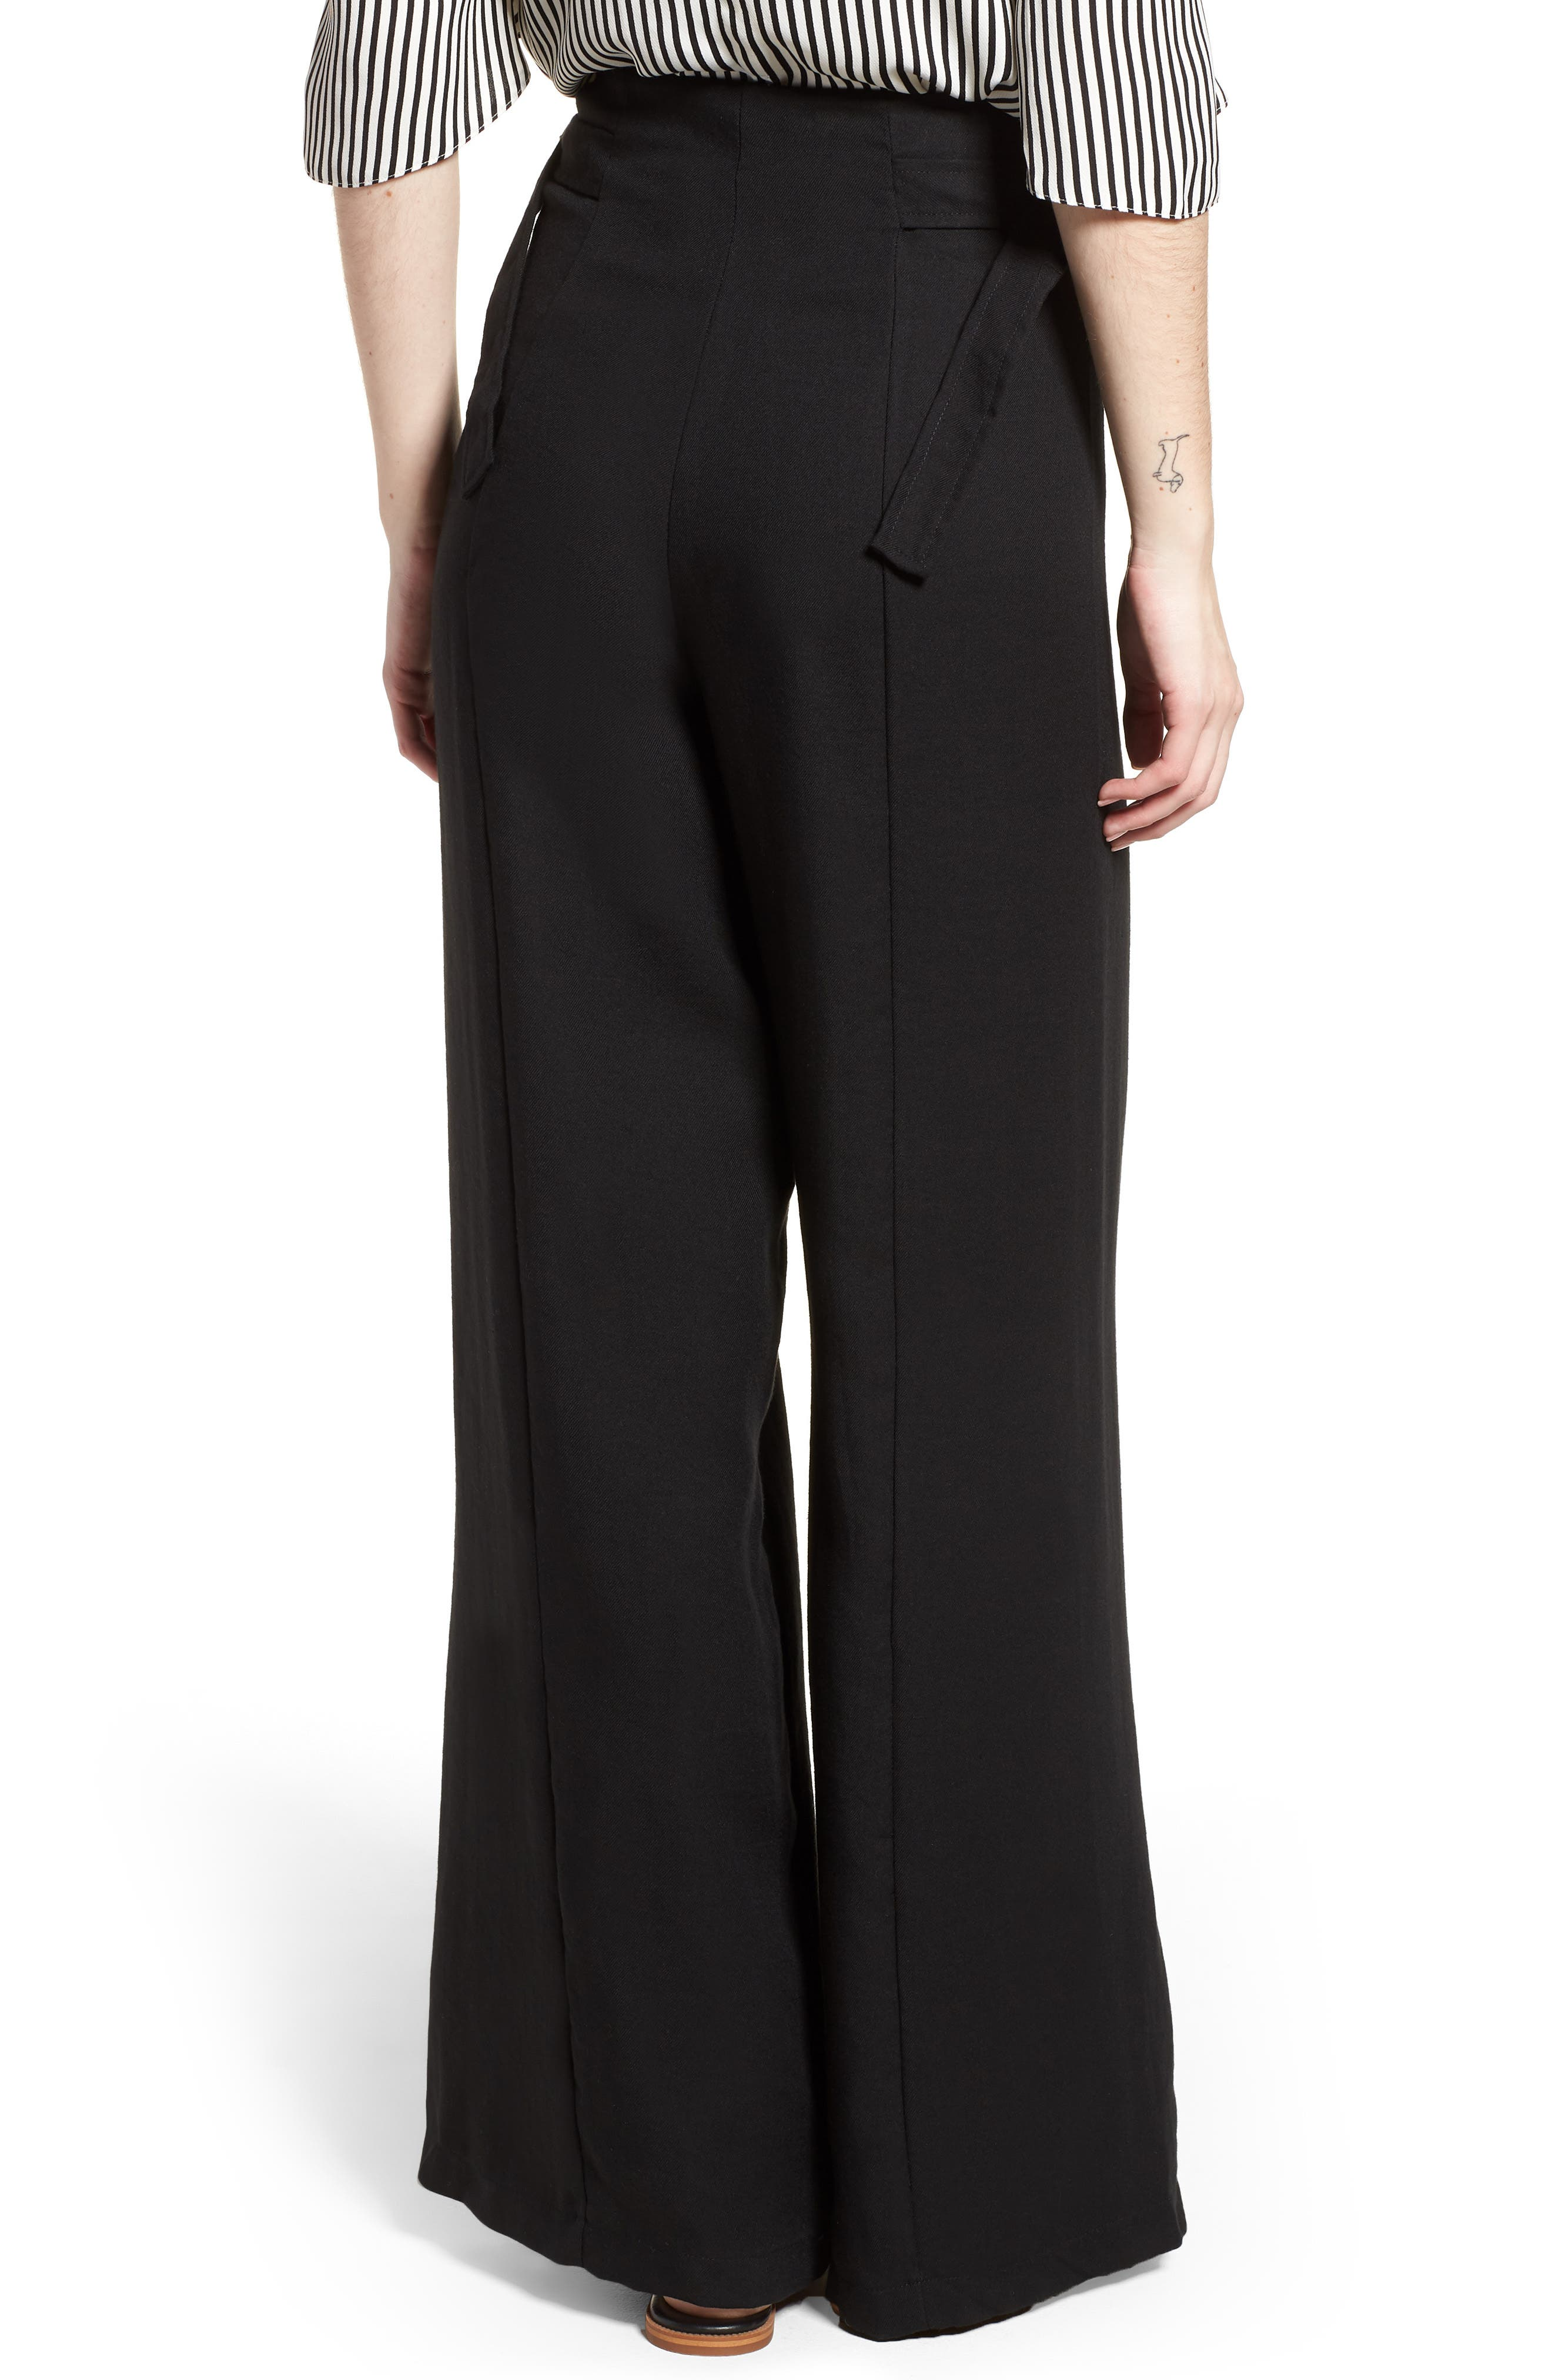 Bishop + Young O-Ring Wide Leg Pants,                             Alternate thumbnail 2, color,                             001